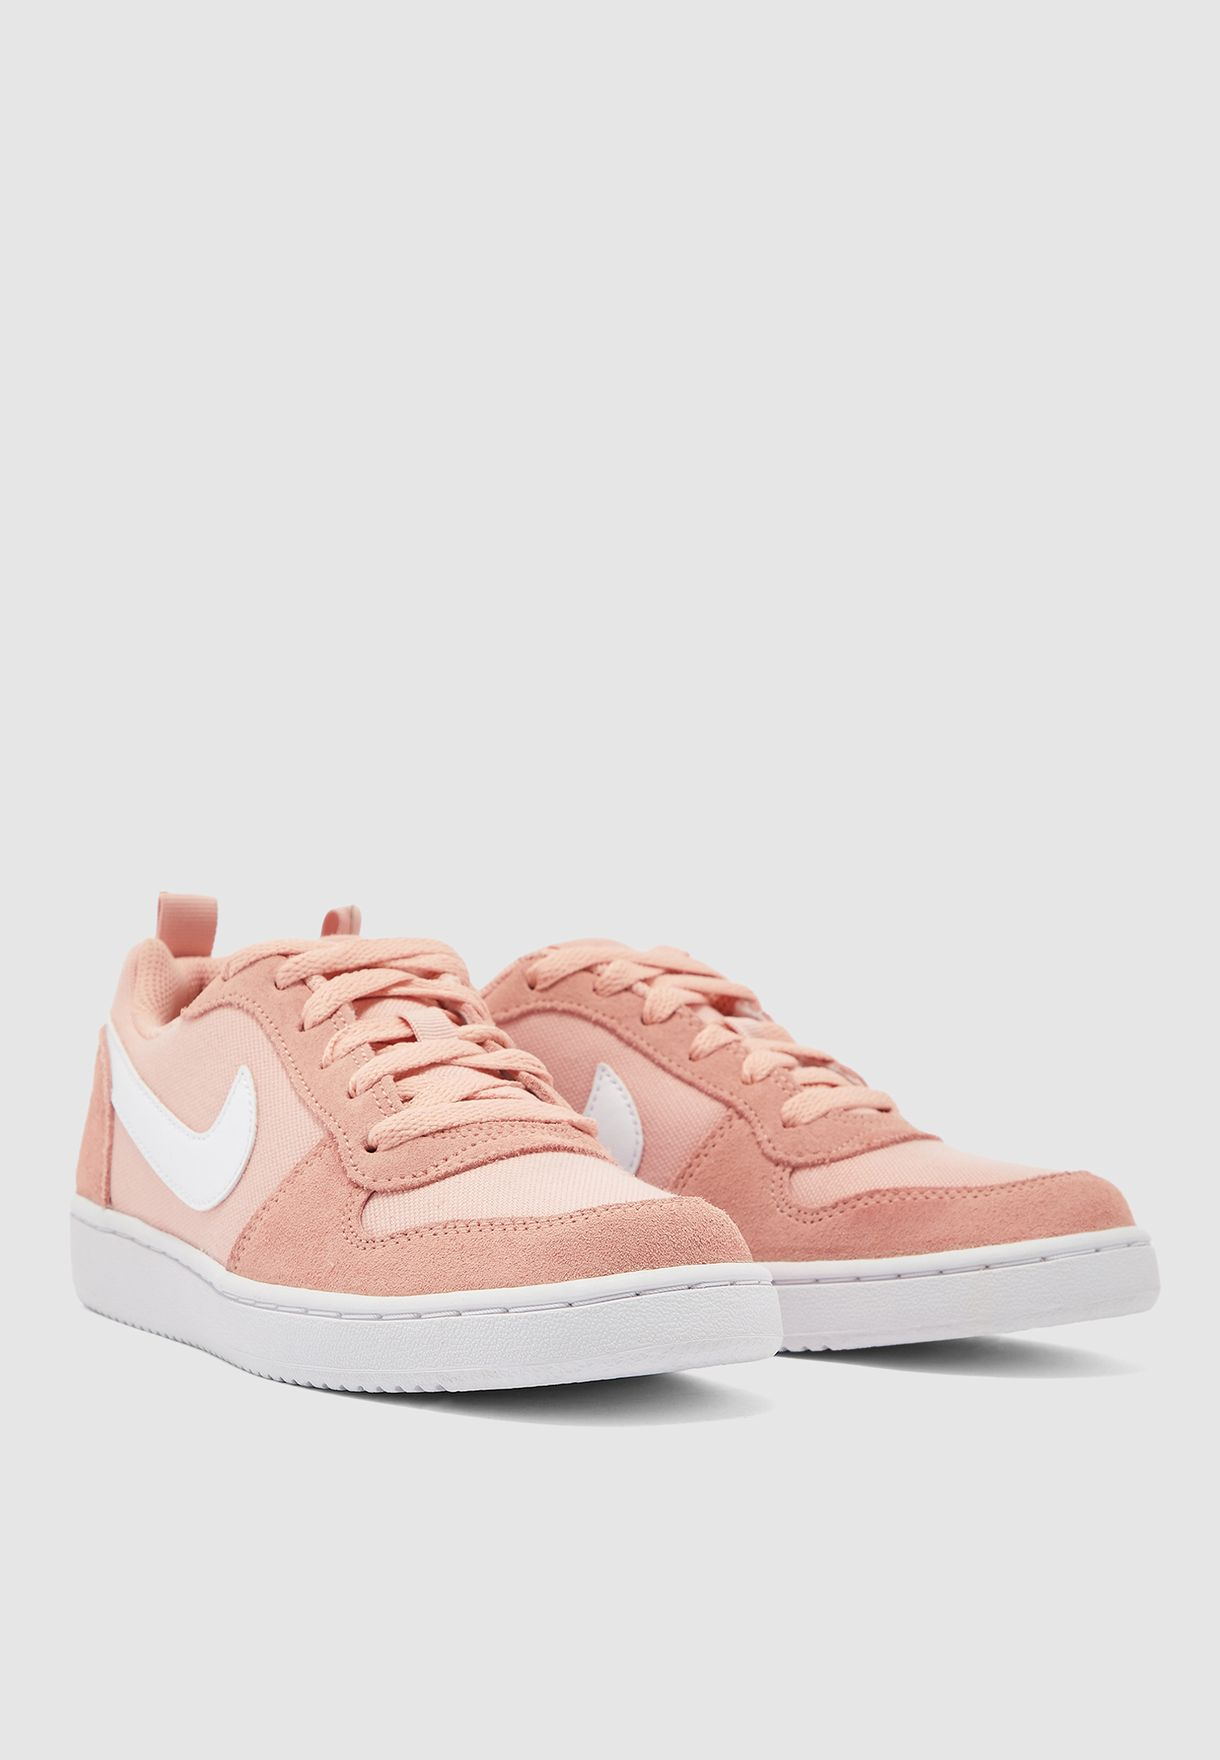 Mejorar galería barato  Buy Nike pink Youth Court Borough Low PE for Kids in MENA, Worldwide |  AV5137-600